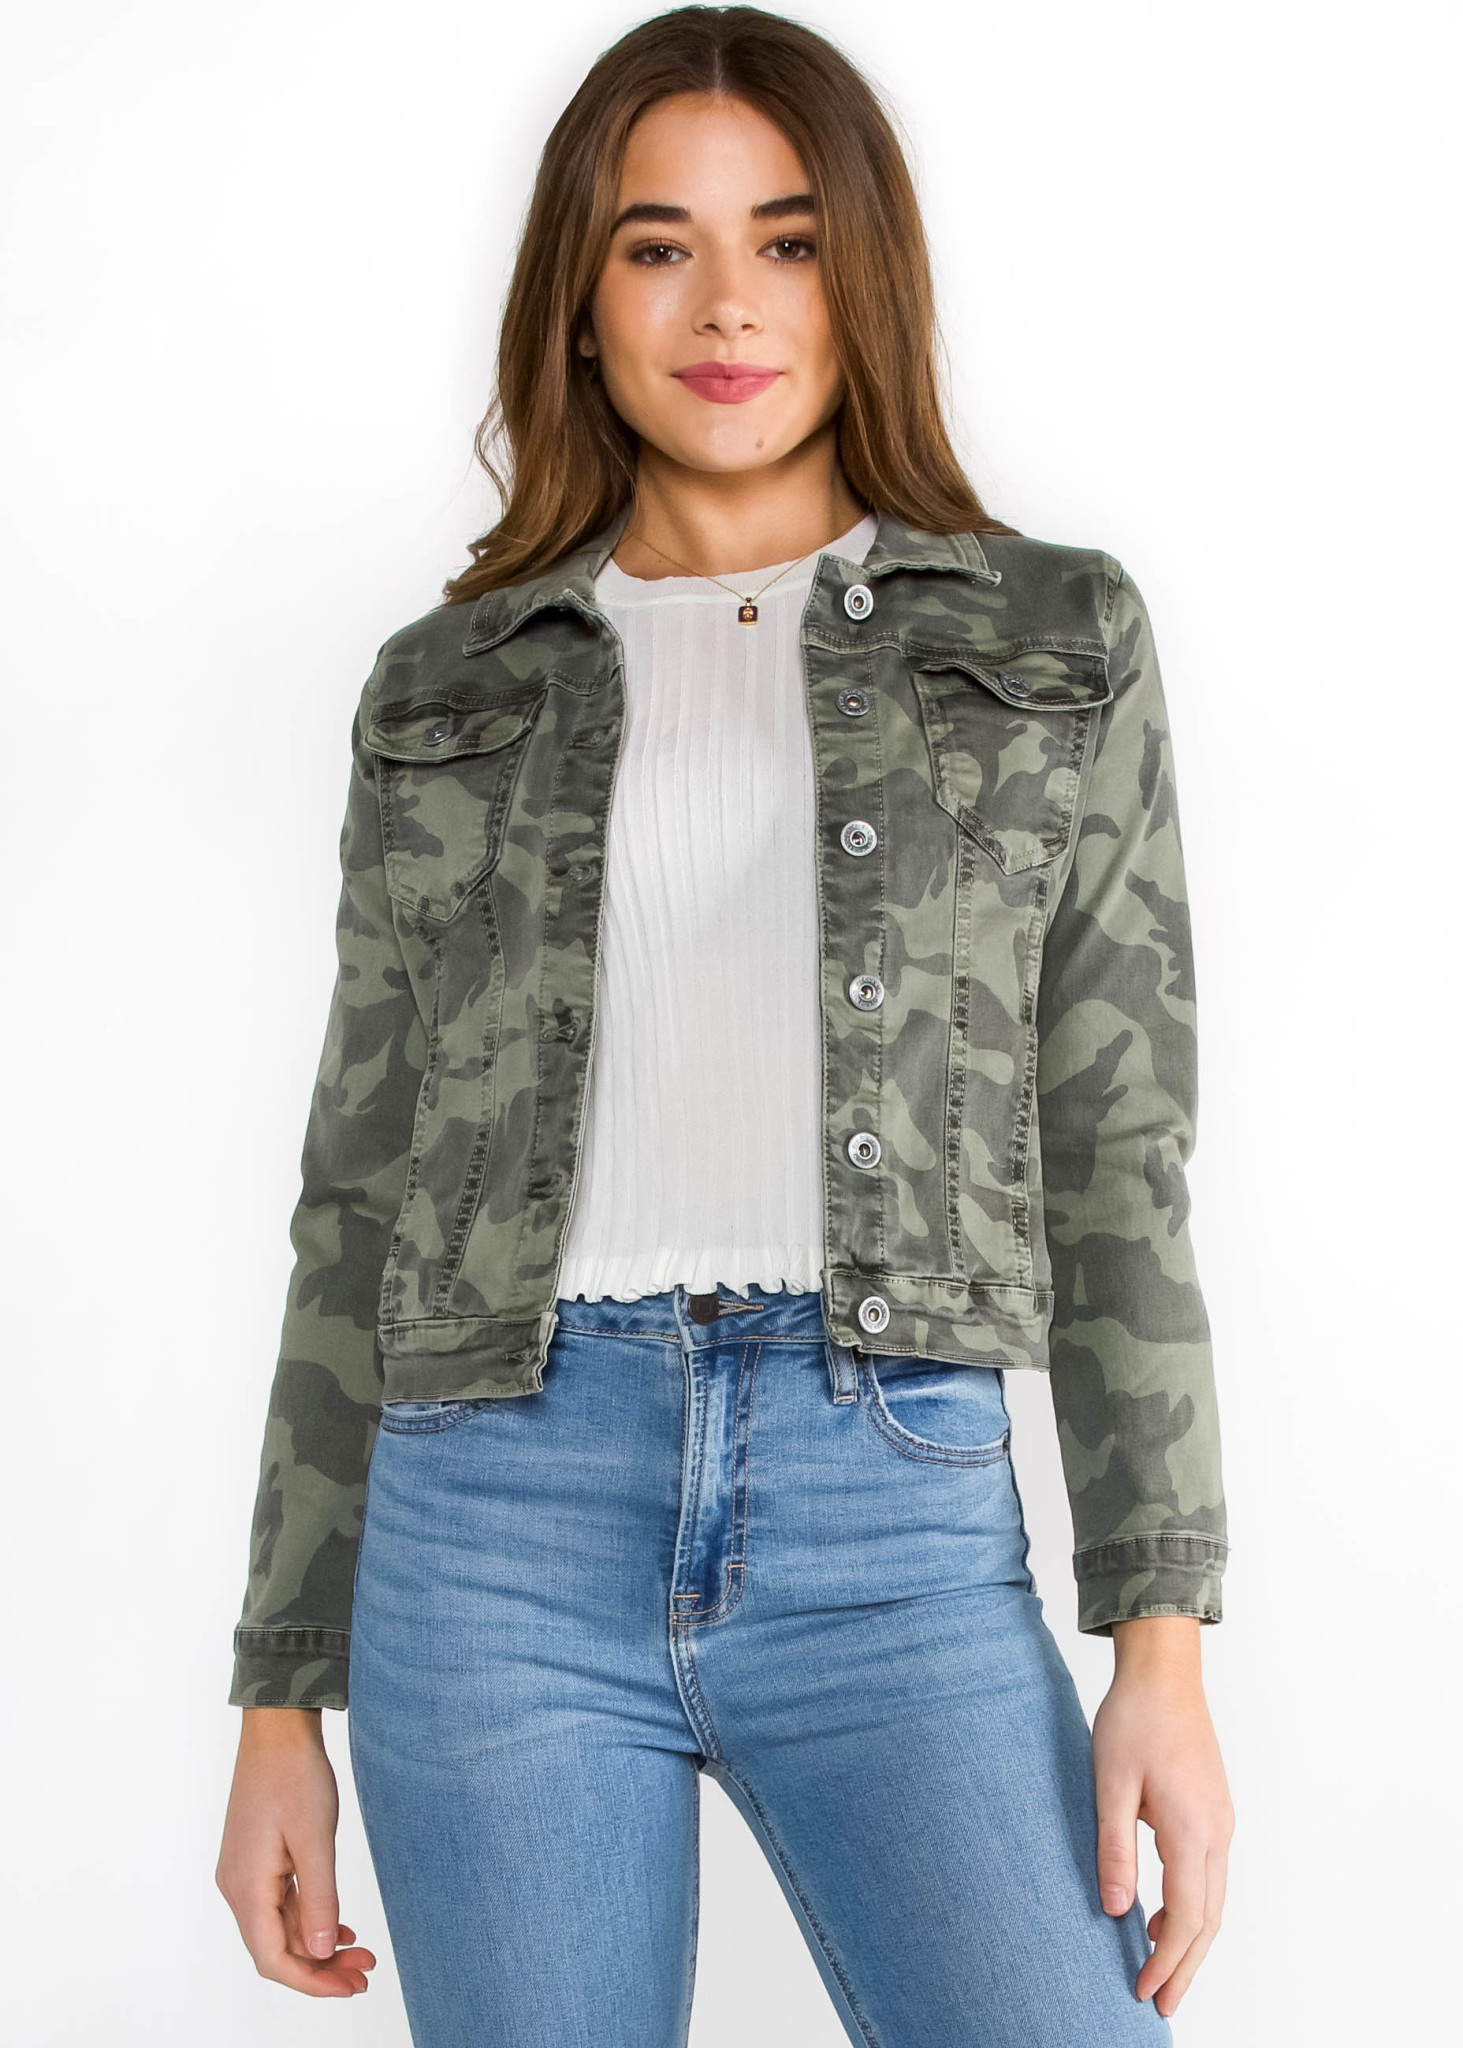 LOST IN TRANSITION CAMO JACKET